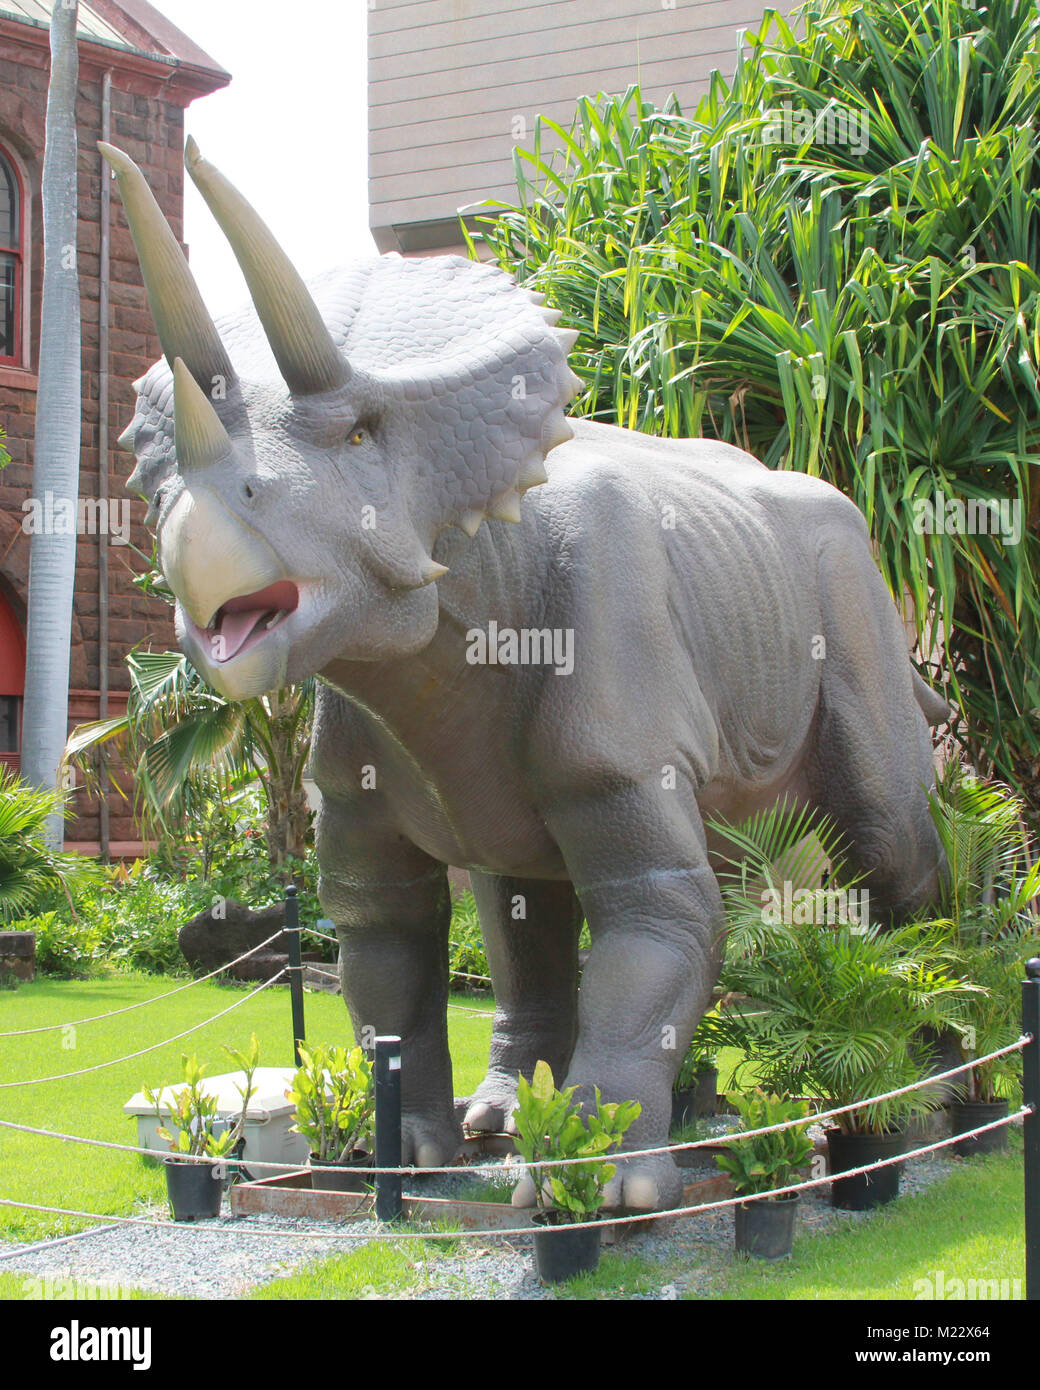 A triceratops statue from the Bernice Pauhai Bishop Museum in Honolulu, Hawaii. - Stock Image